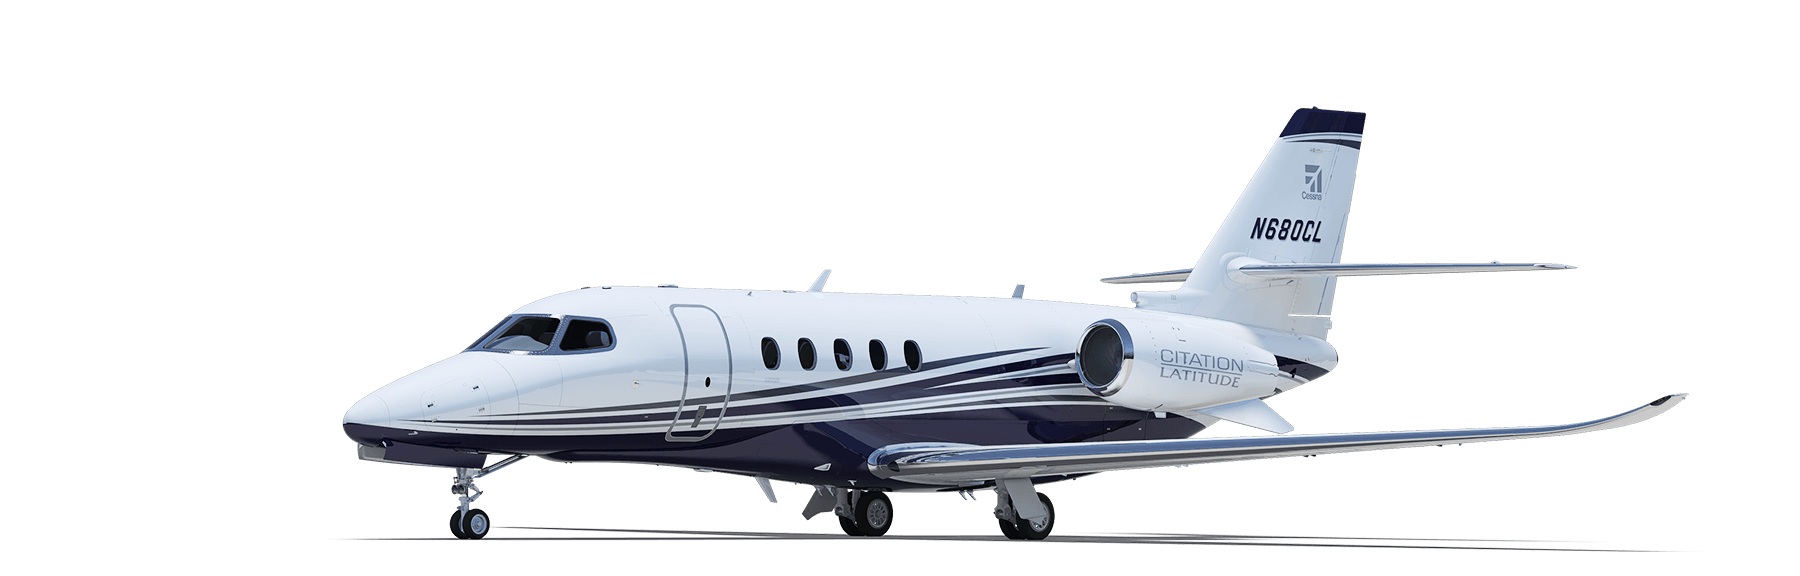 Drawing airplane private jet. Citation latitude